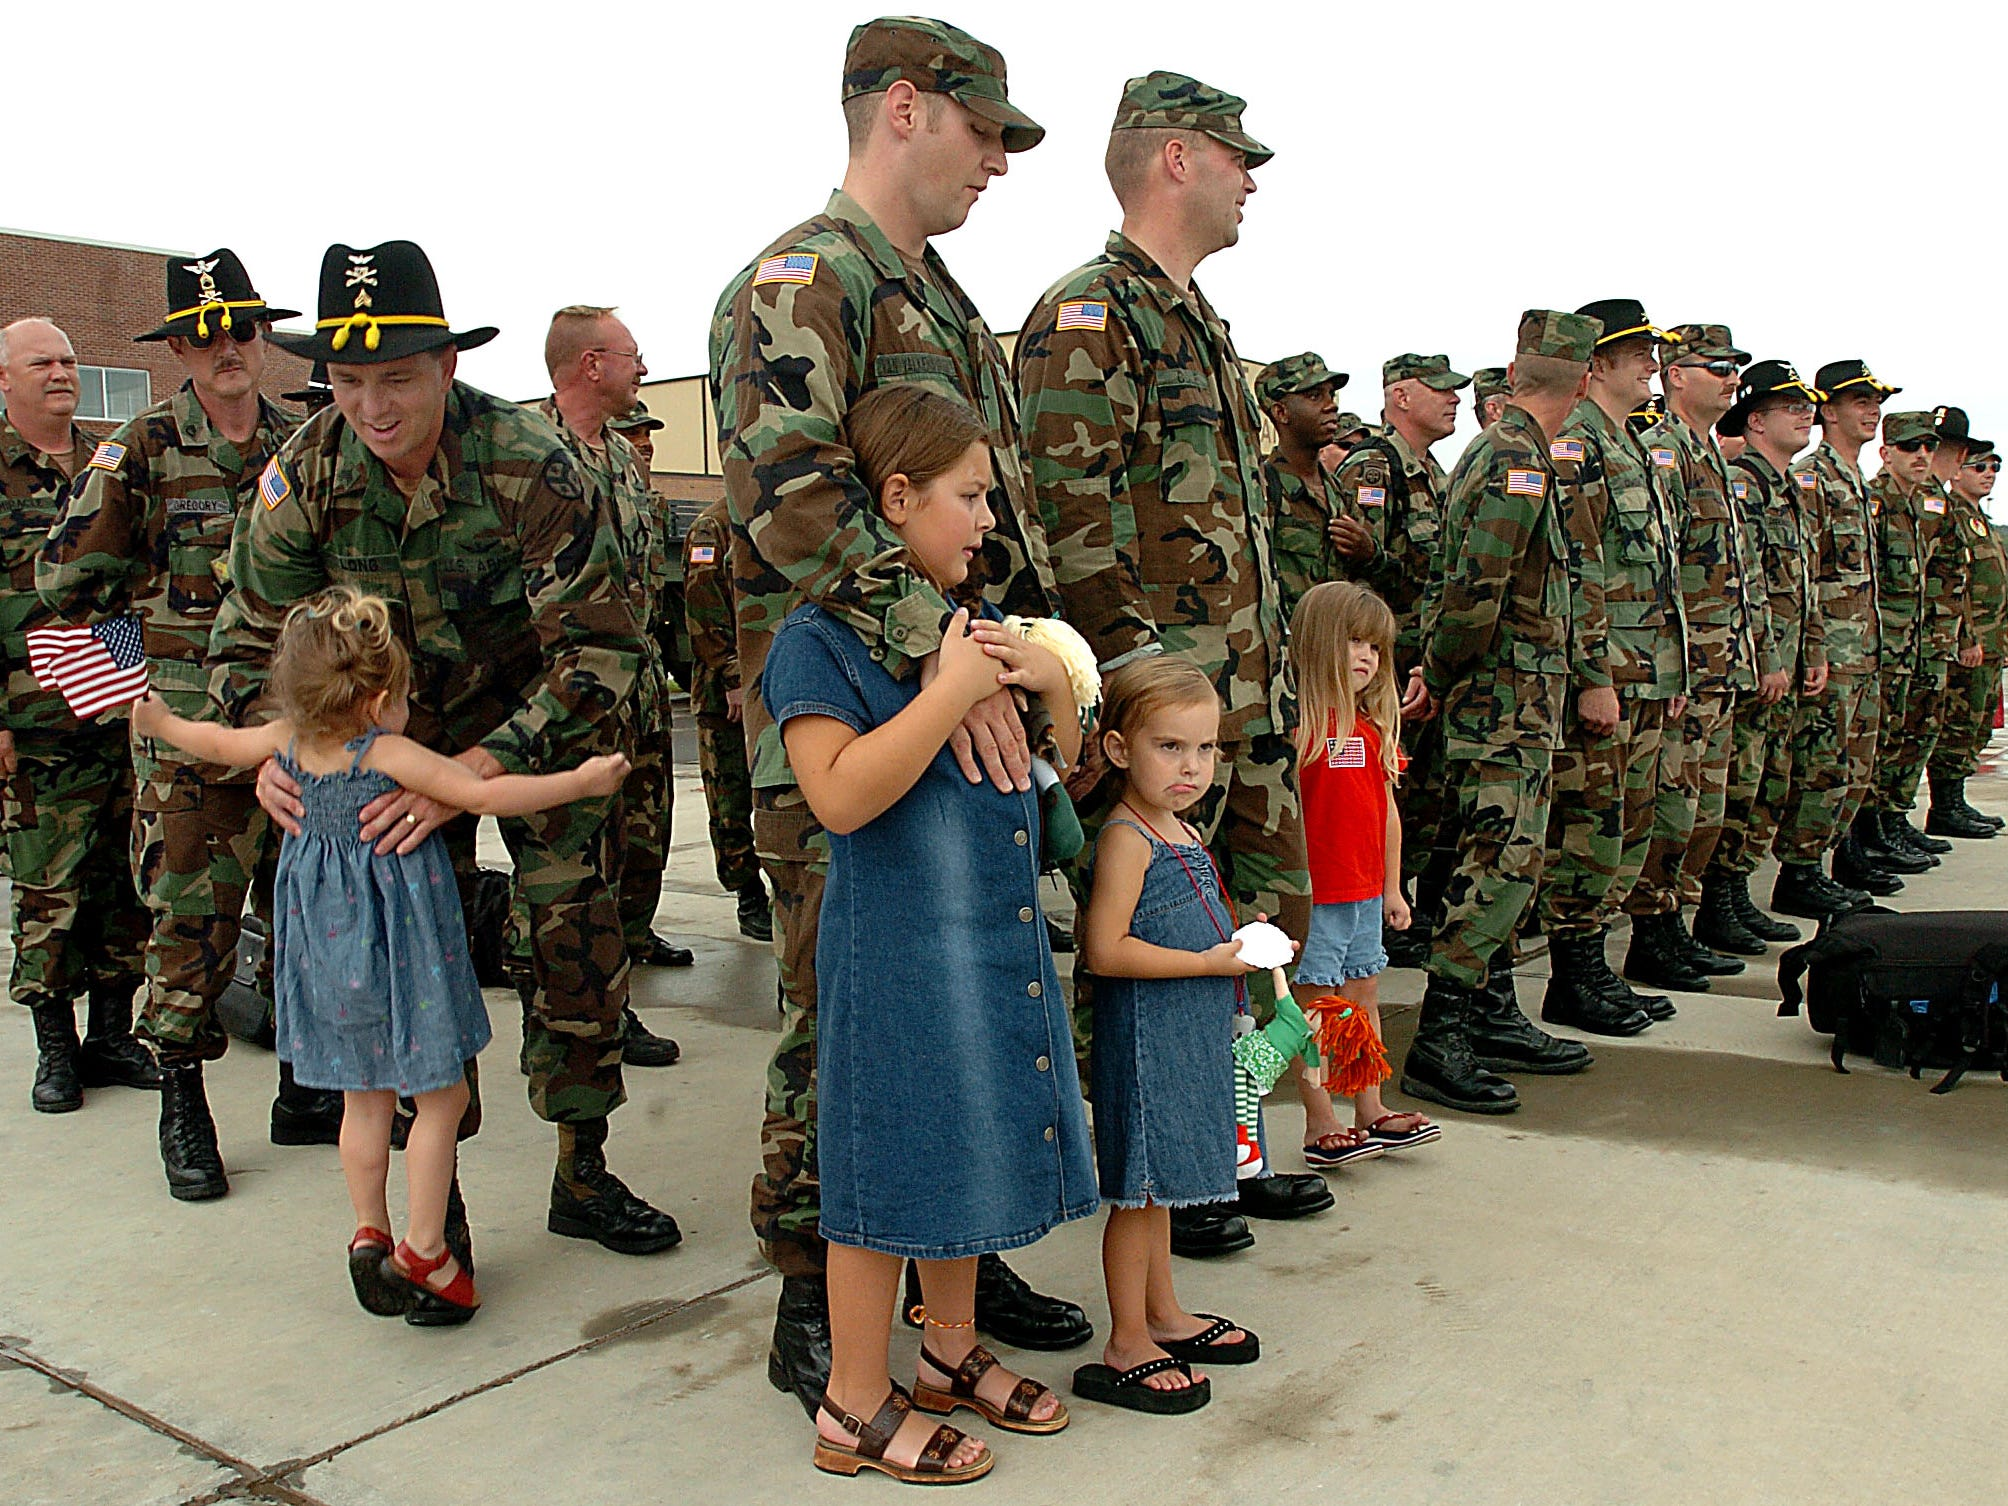 Sgt. Dale Long steps out of formation to pick up his daughter, Kiely, 3, just as the squadron was dismissed to go home with their families. In front of Long is Spc. Charles Van Valkenburgh with his two daughters Kakenzy, 7, and Mallory, 3. Members of the4th Squadron of the 278th return home to hugs and kisses on the tarmac at their hanger at McGhee Tyson Airbase Thursday afternoon.